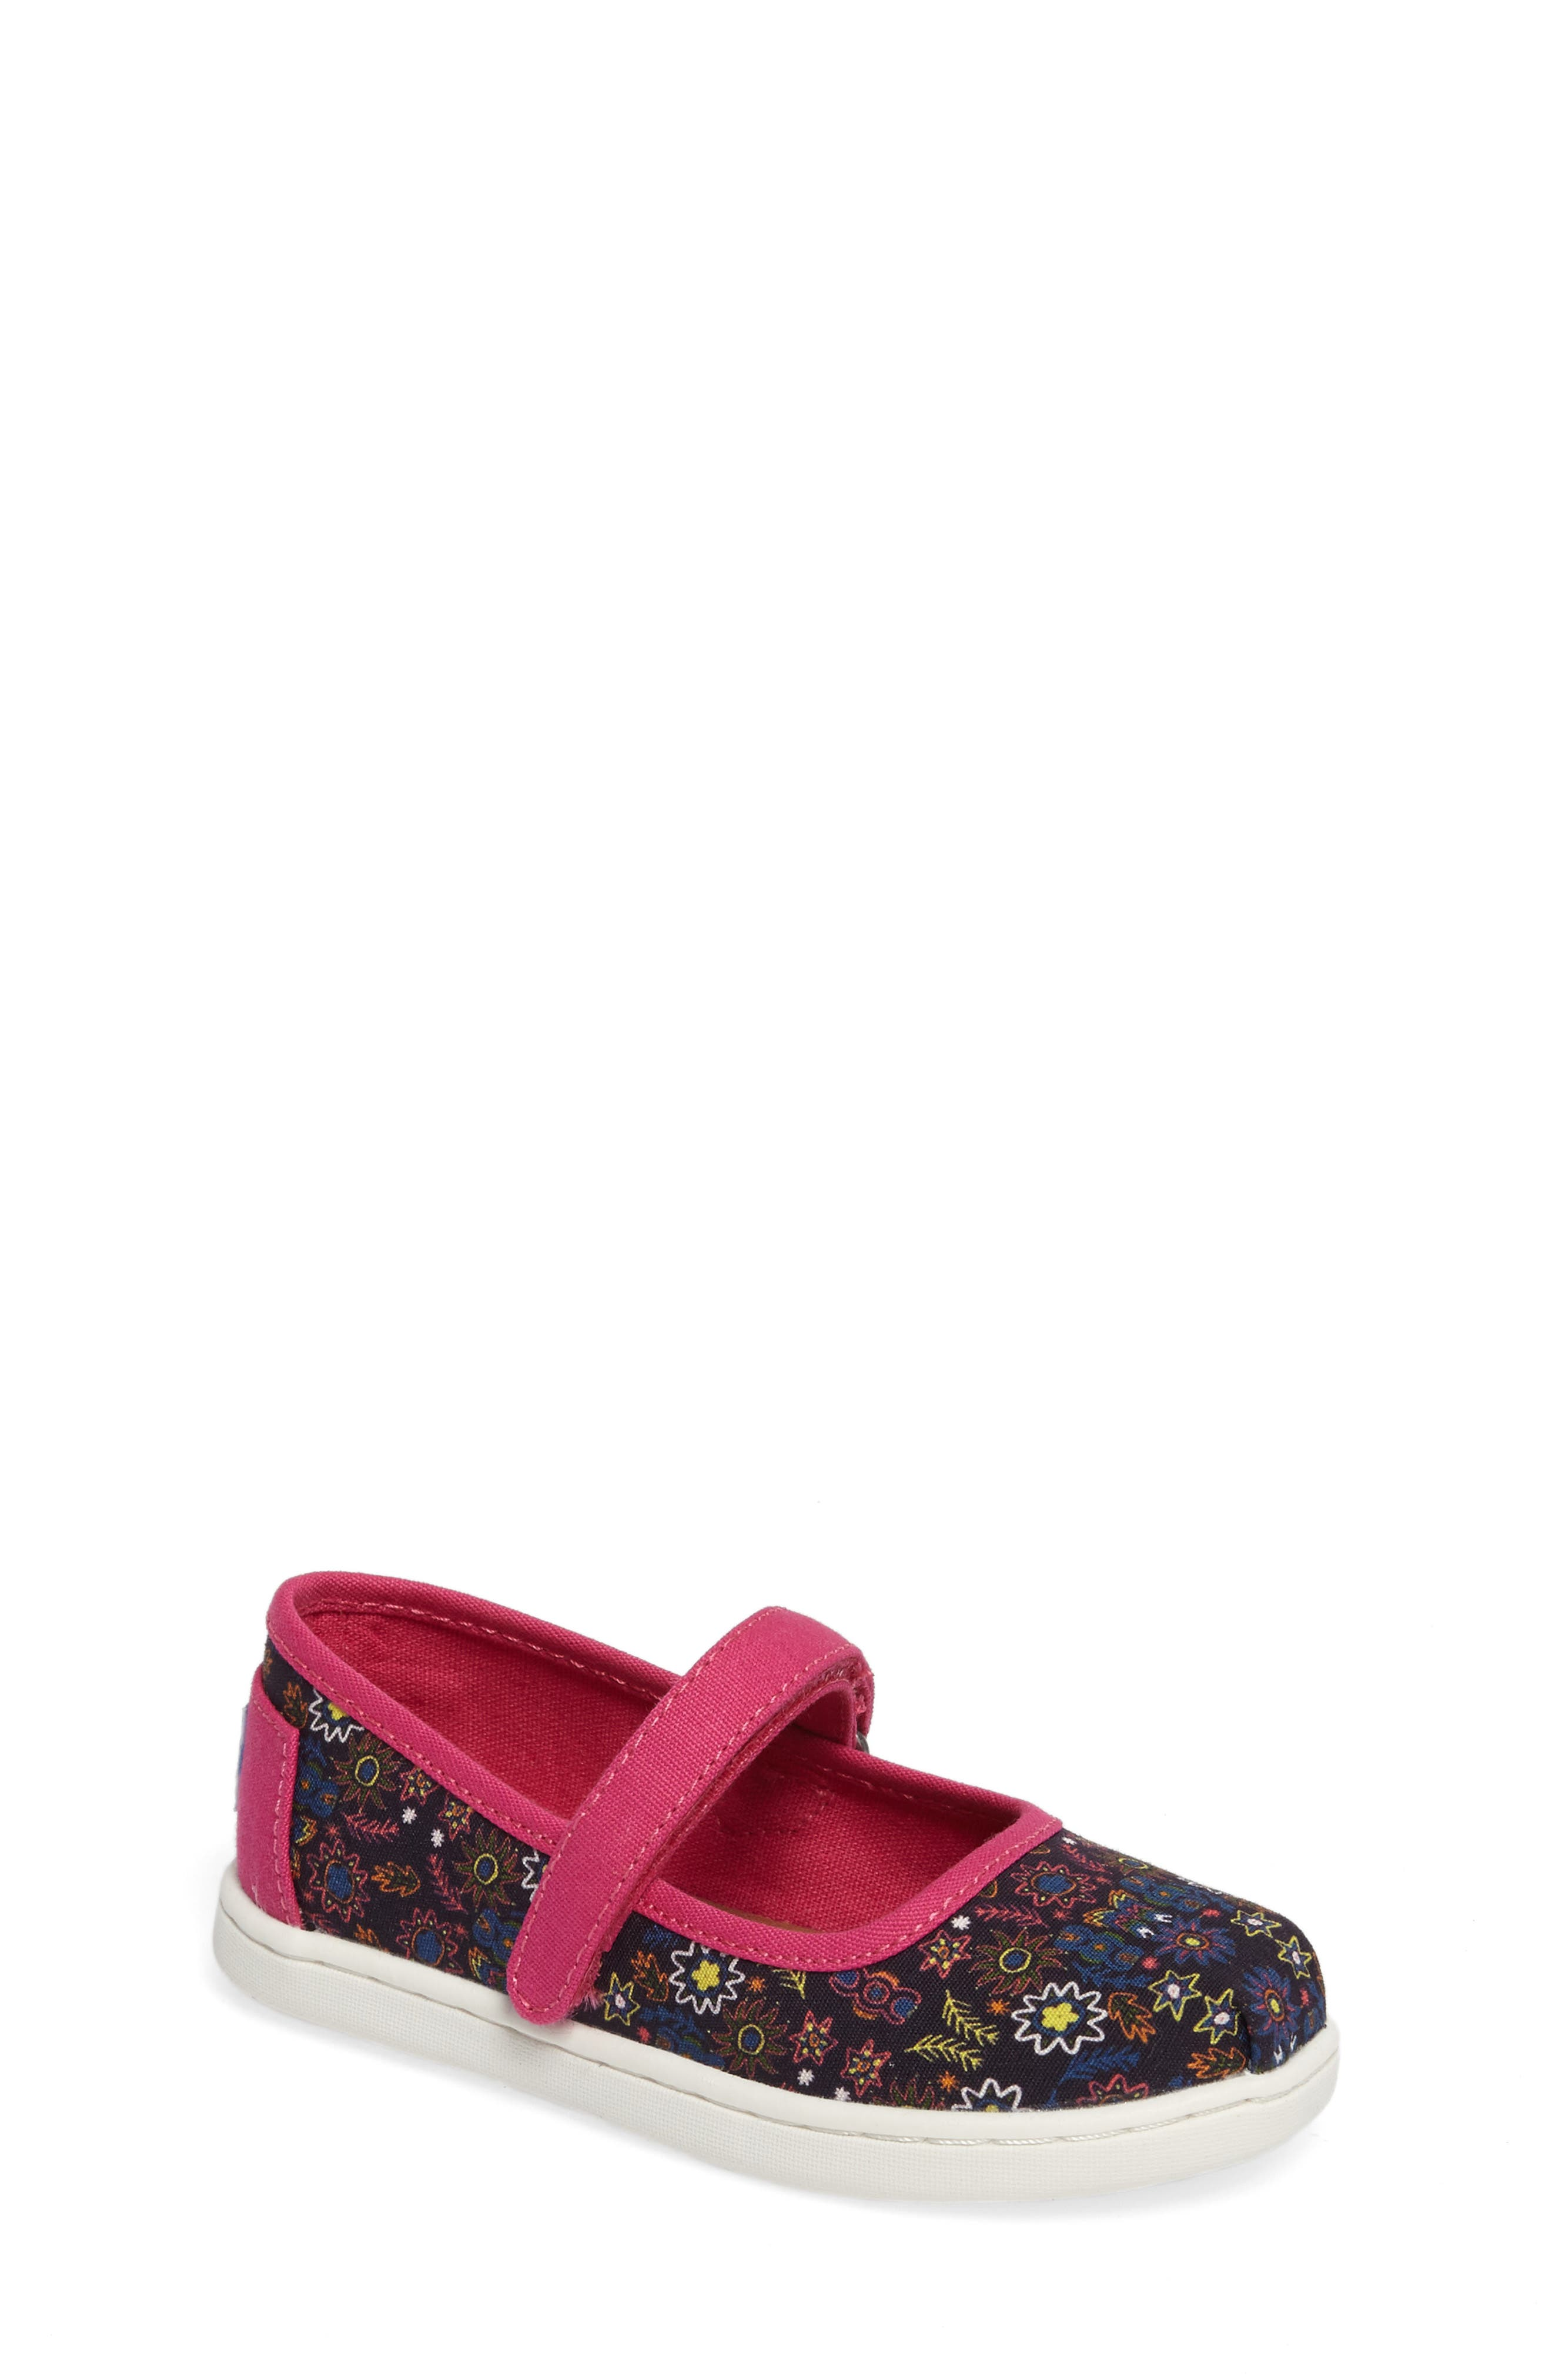 TOMS Tiny Mary Jane Flat (Baby, Walker & Toddler)